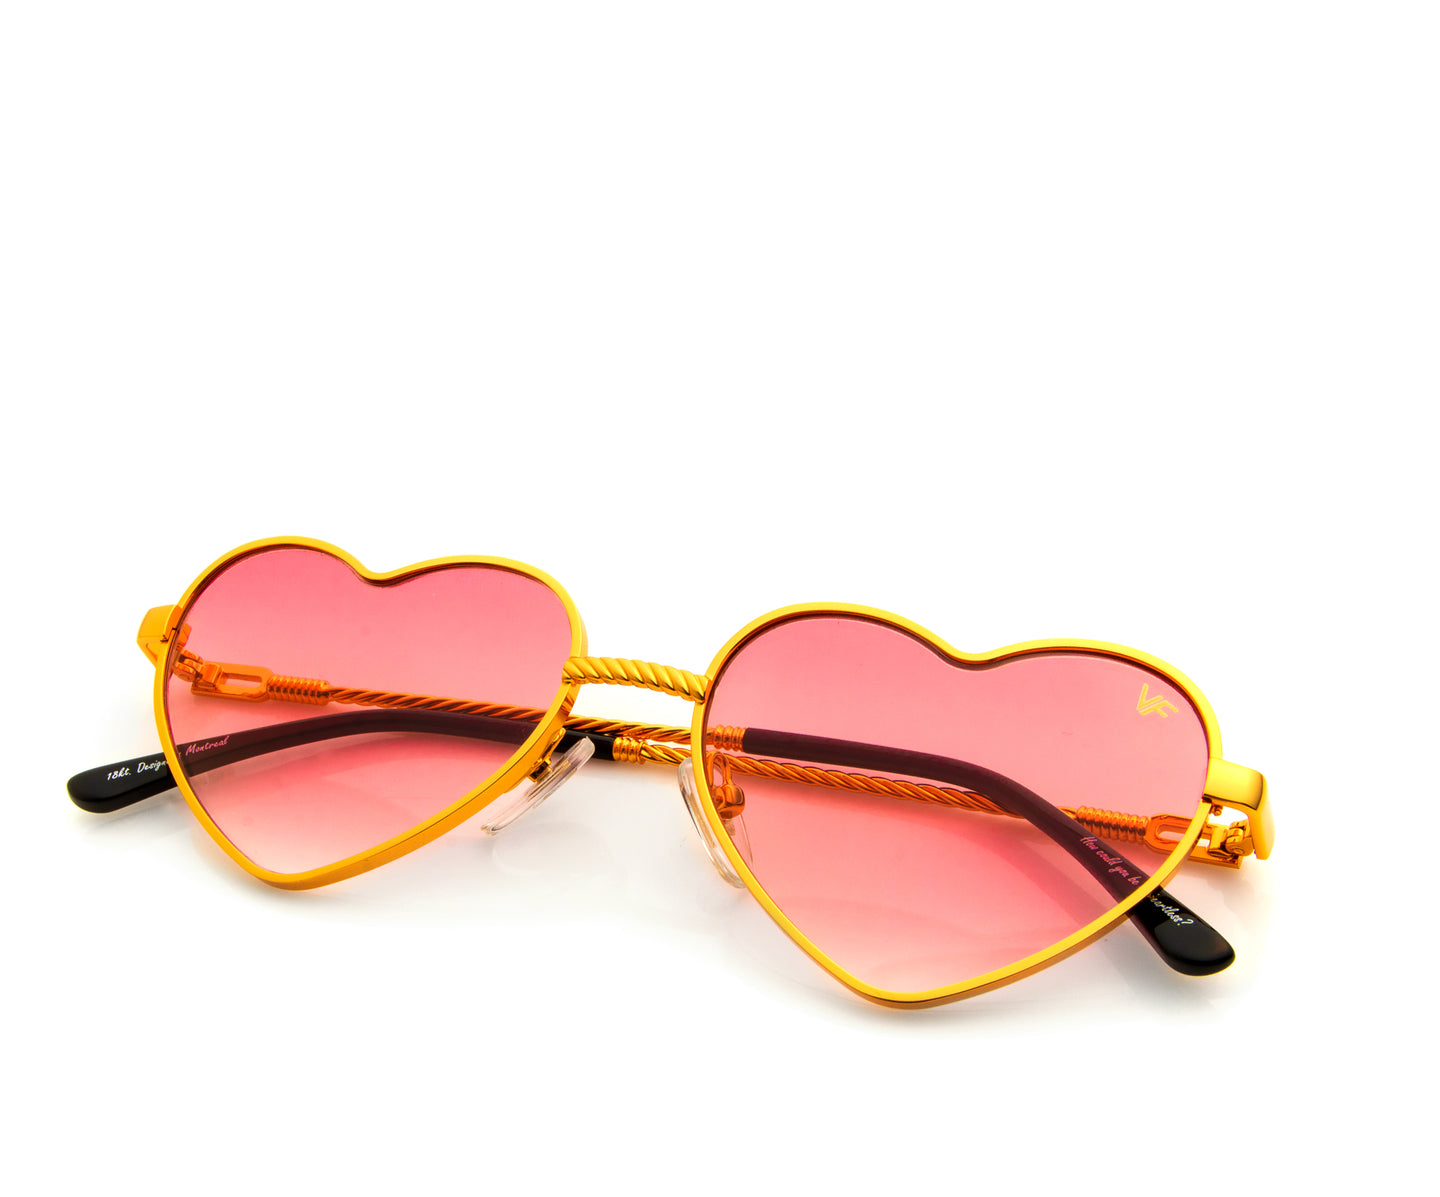 I Heart VF Sunglasses 18KT Gold (Red Gradient), VF Masterpiece , glasses frames, eyeglasses online, eyeglass frames, mens glasses, womens glasses, buy glasses online, designer eyeglasses, vintage sunglasses, retro sunglasses, vintage glasses, sunglass, eyeglass, glasses, lens, vintage frames company, vf